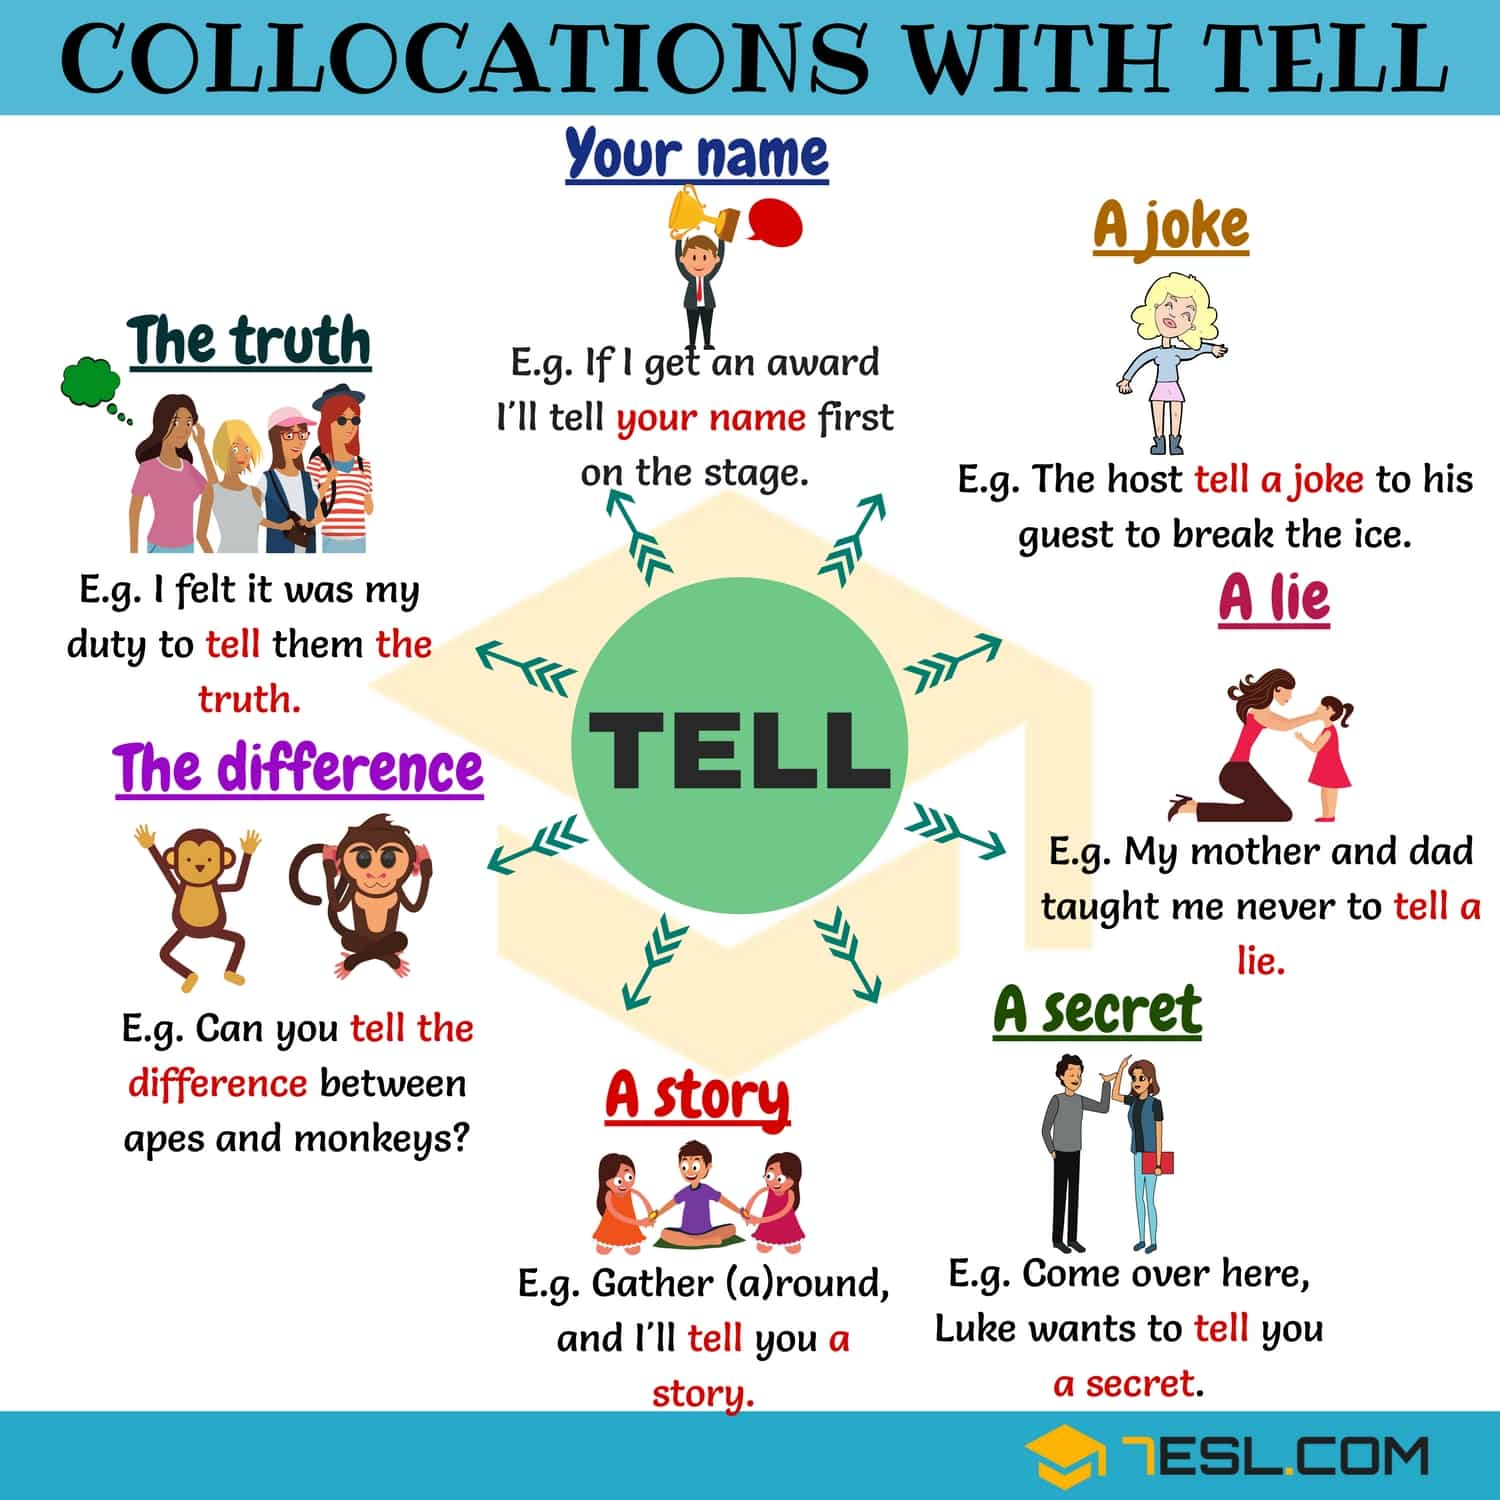 Collocations with TELL